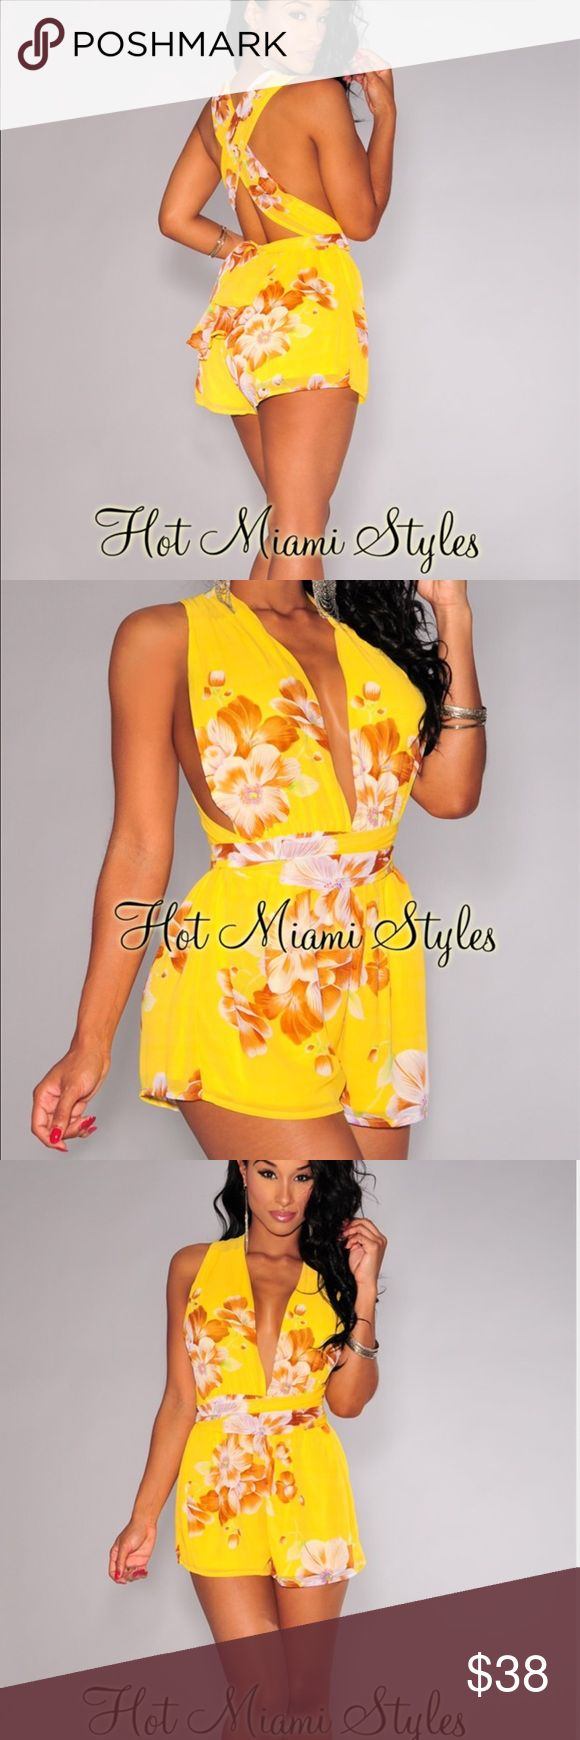 Hot Miami Styles yellow floral romper nwt m Brand new and sold out on site. Multi-way ties and adjustable fit. Perfect condition hot miami styles Dresses Mini